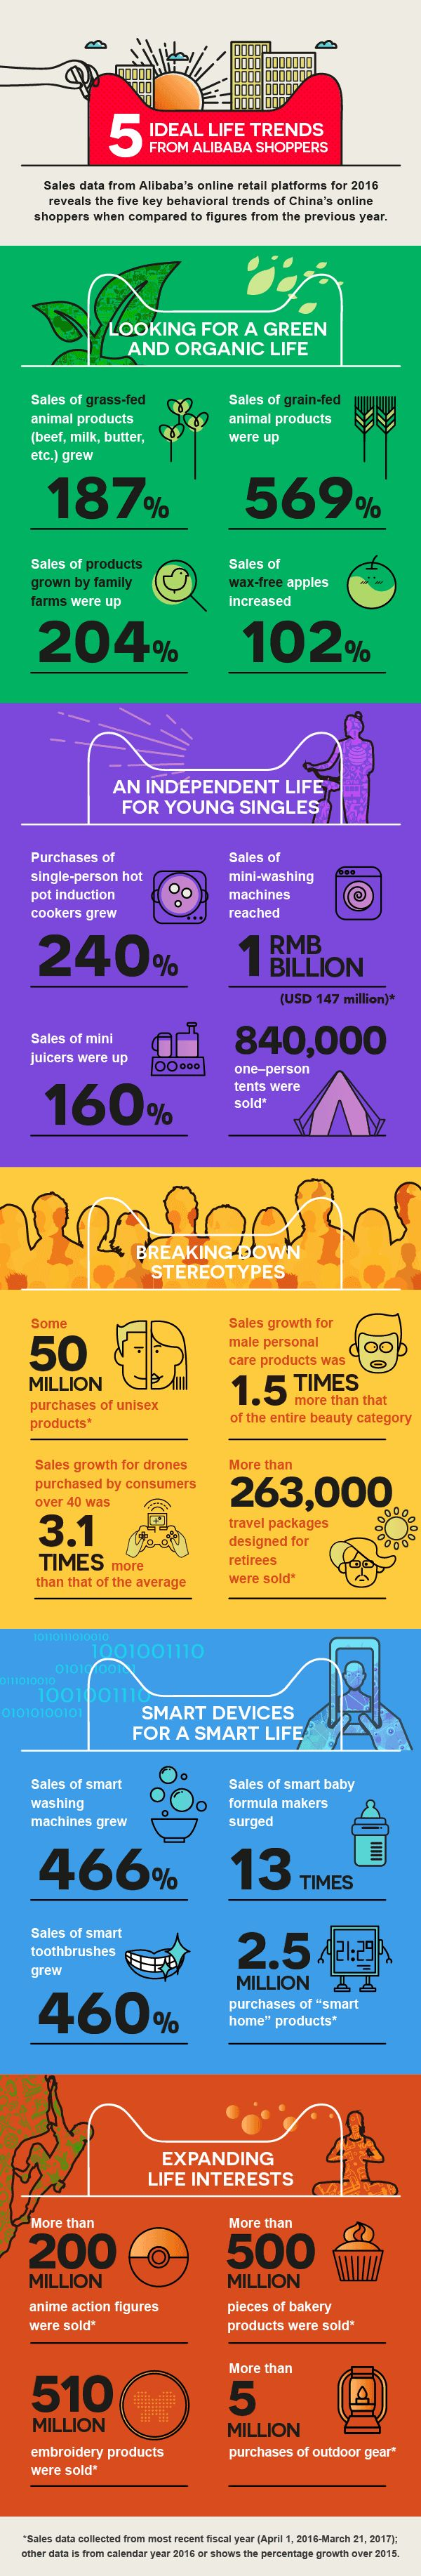 5 Ideal life trends in China from Alibaba shoppers - China Internet Watch